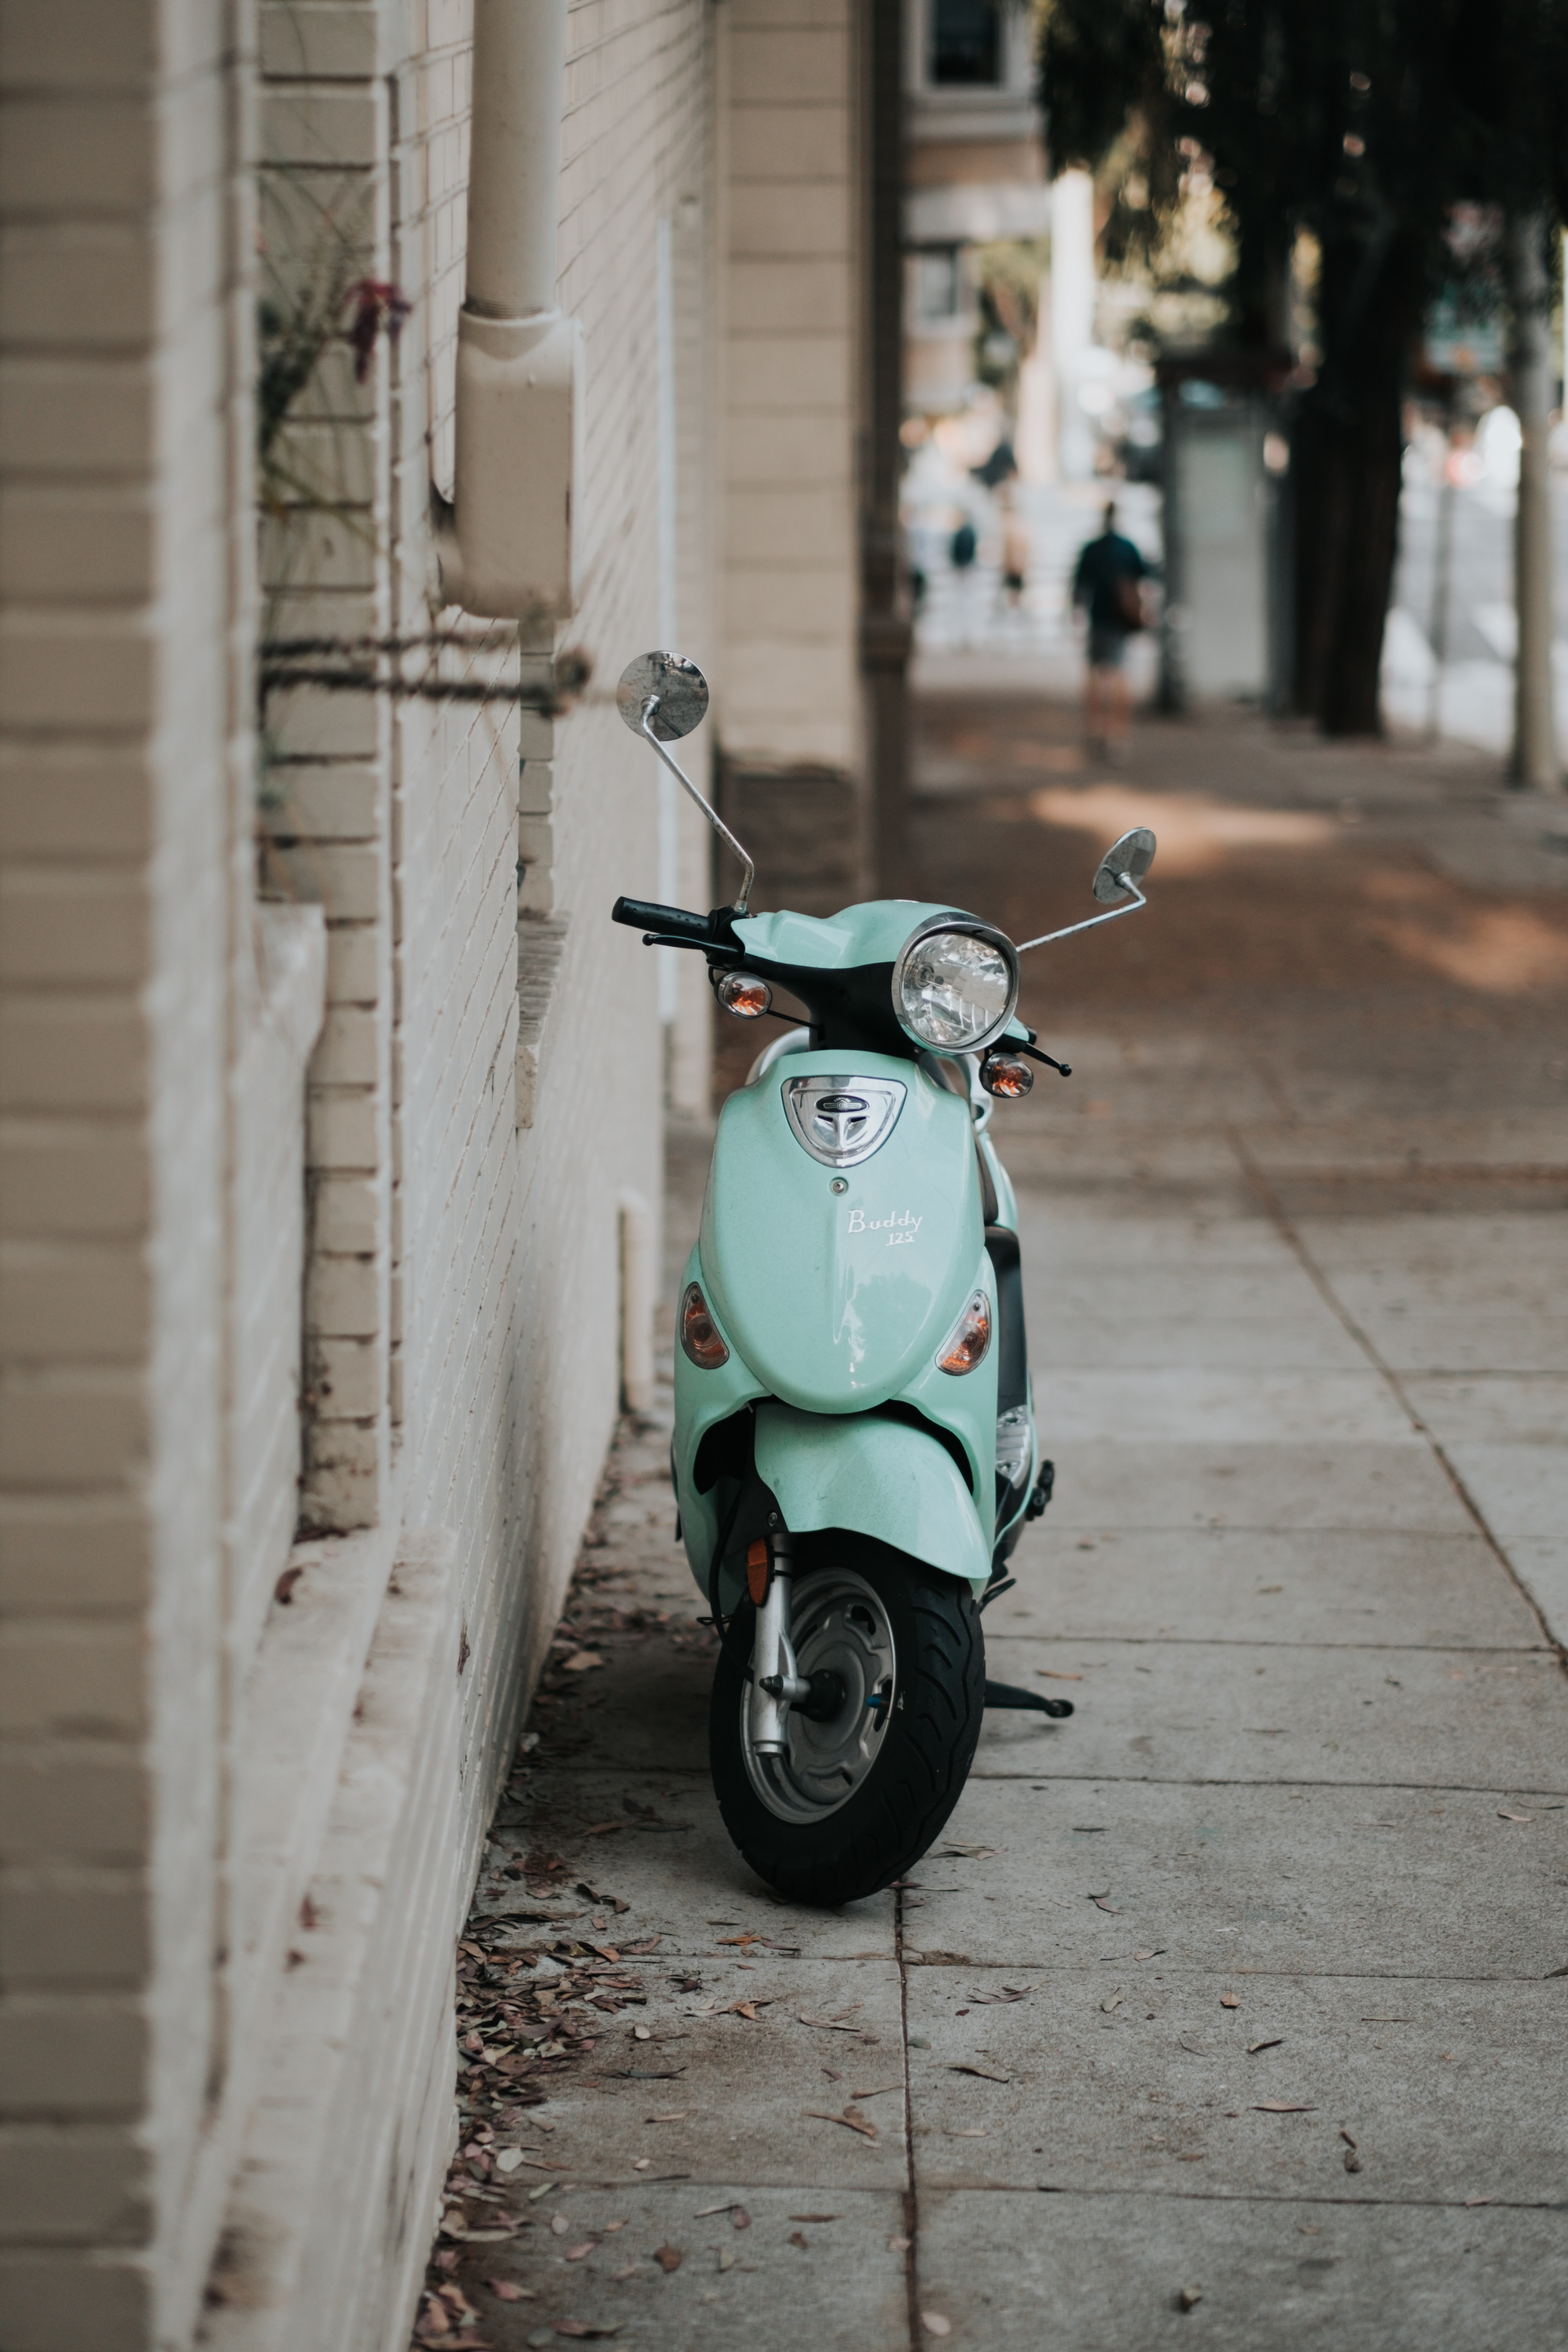 light-blue motor scooter parked near wall